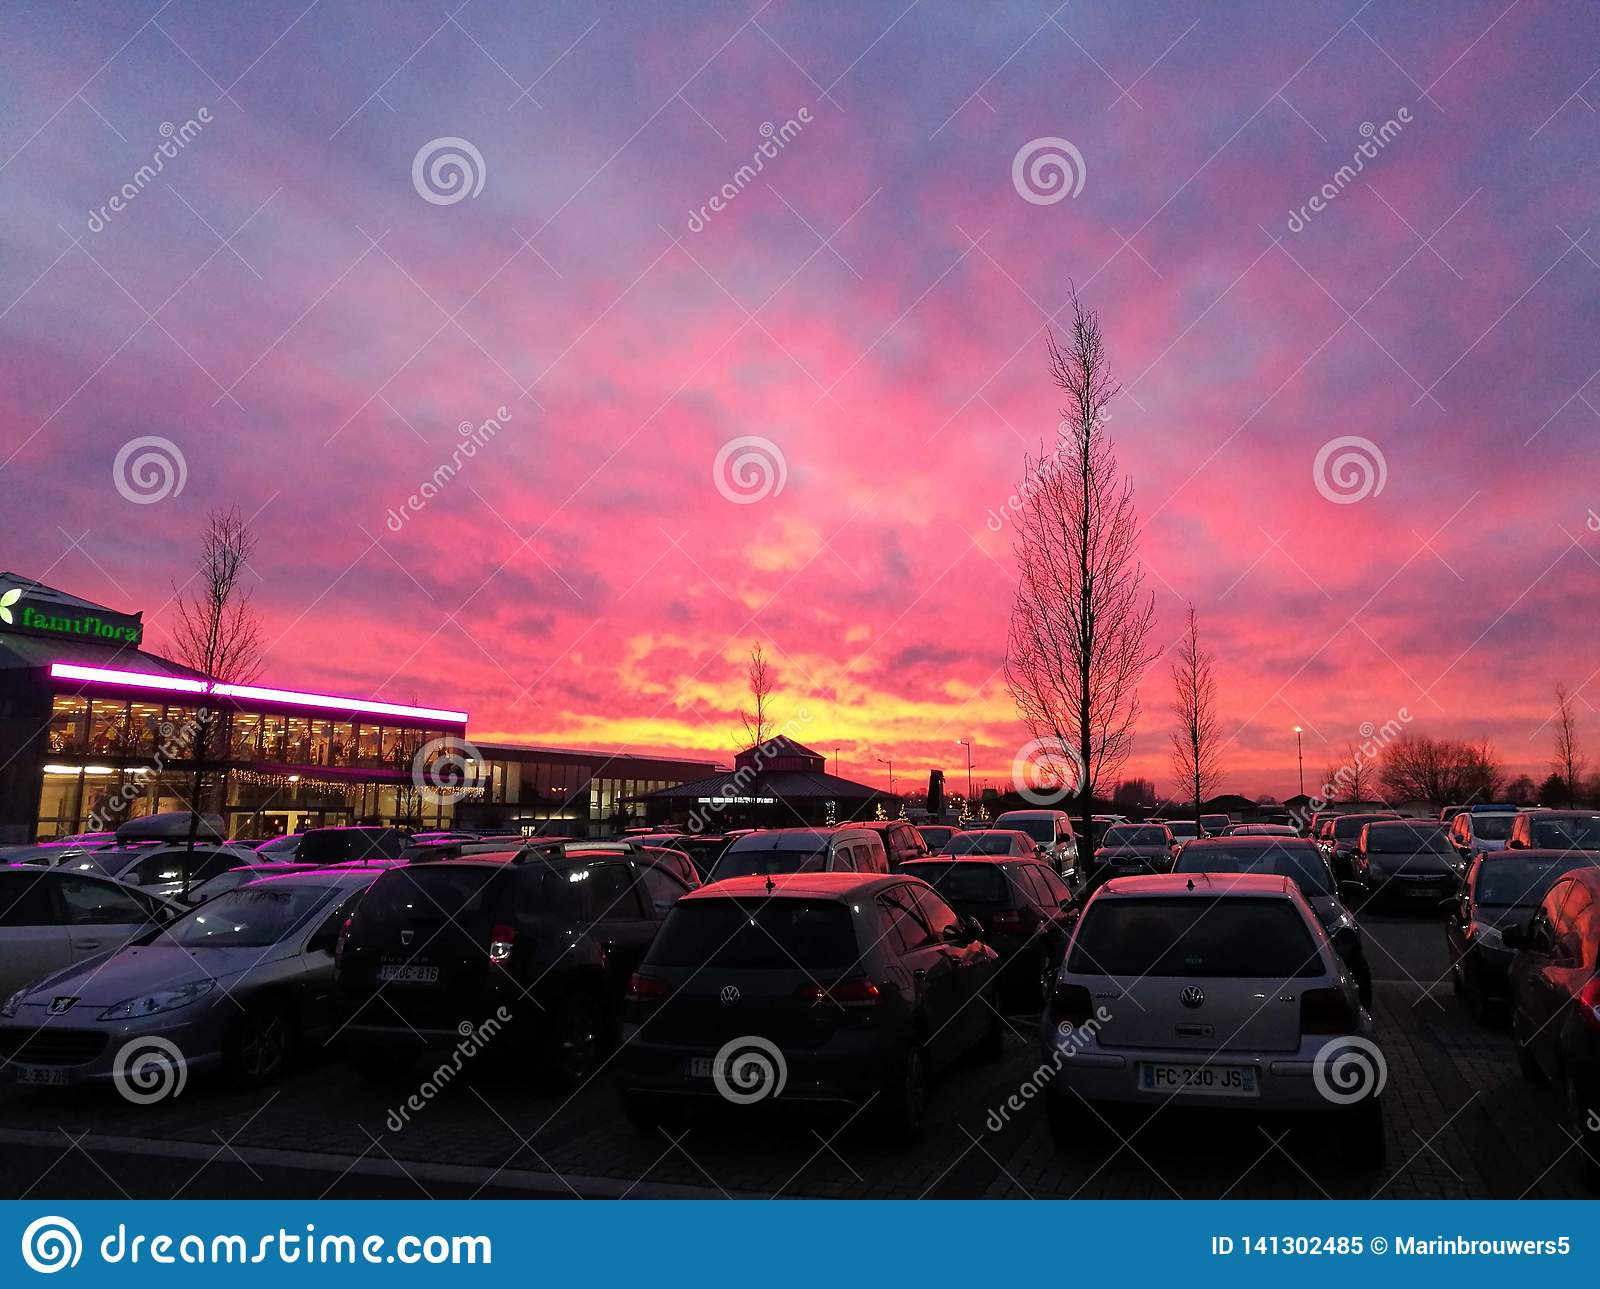 Beautiful sunset over a parking lot.